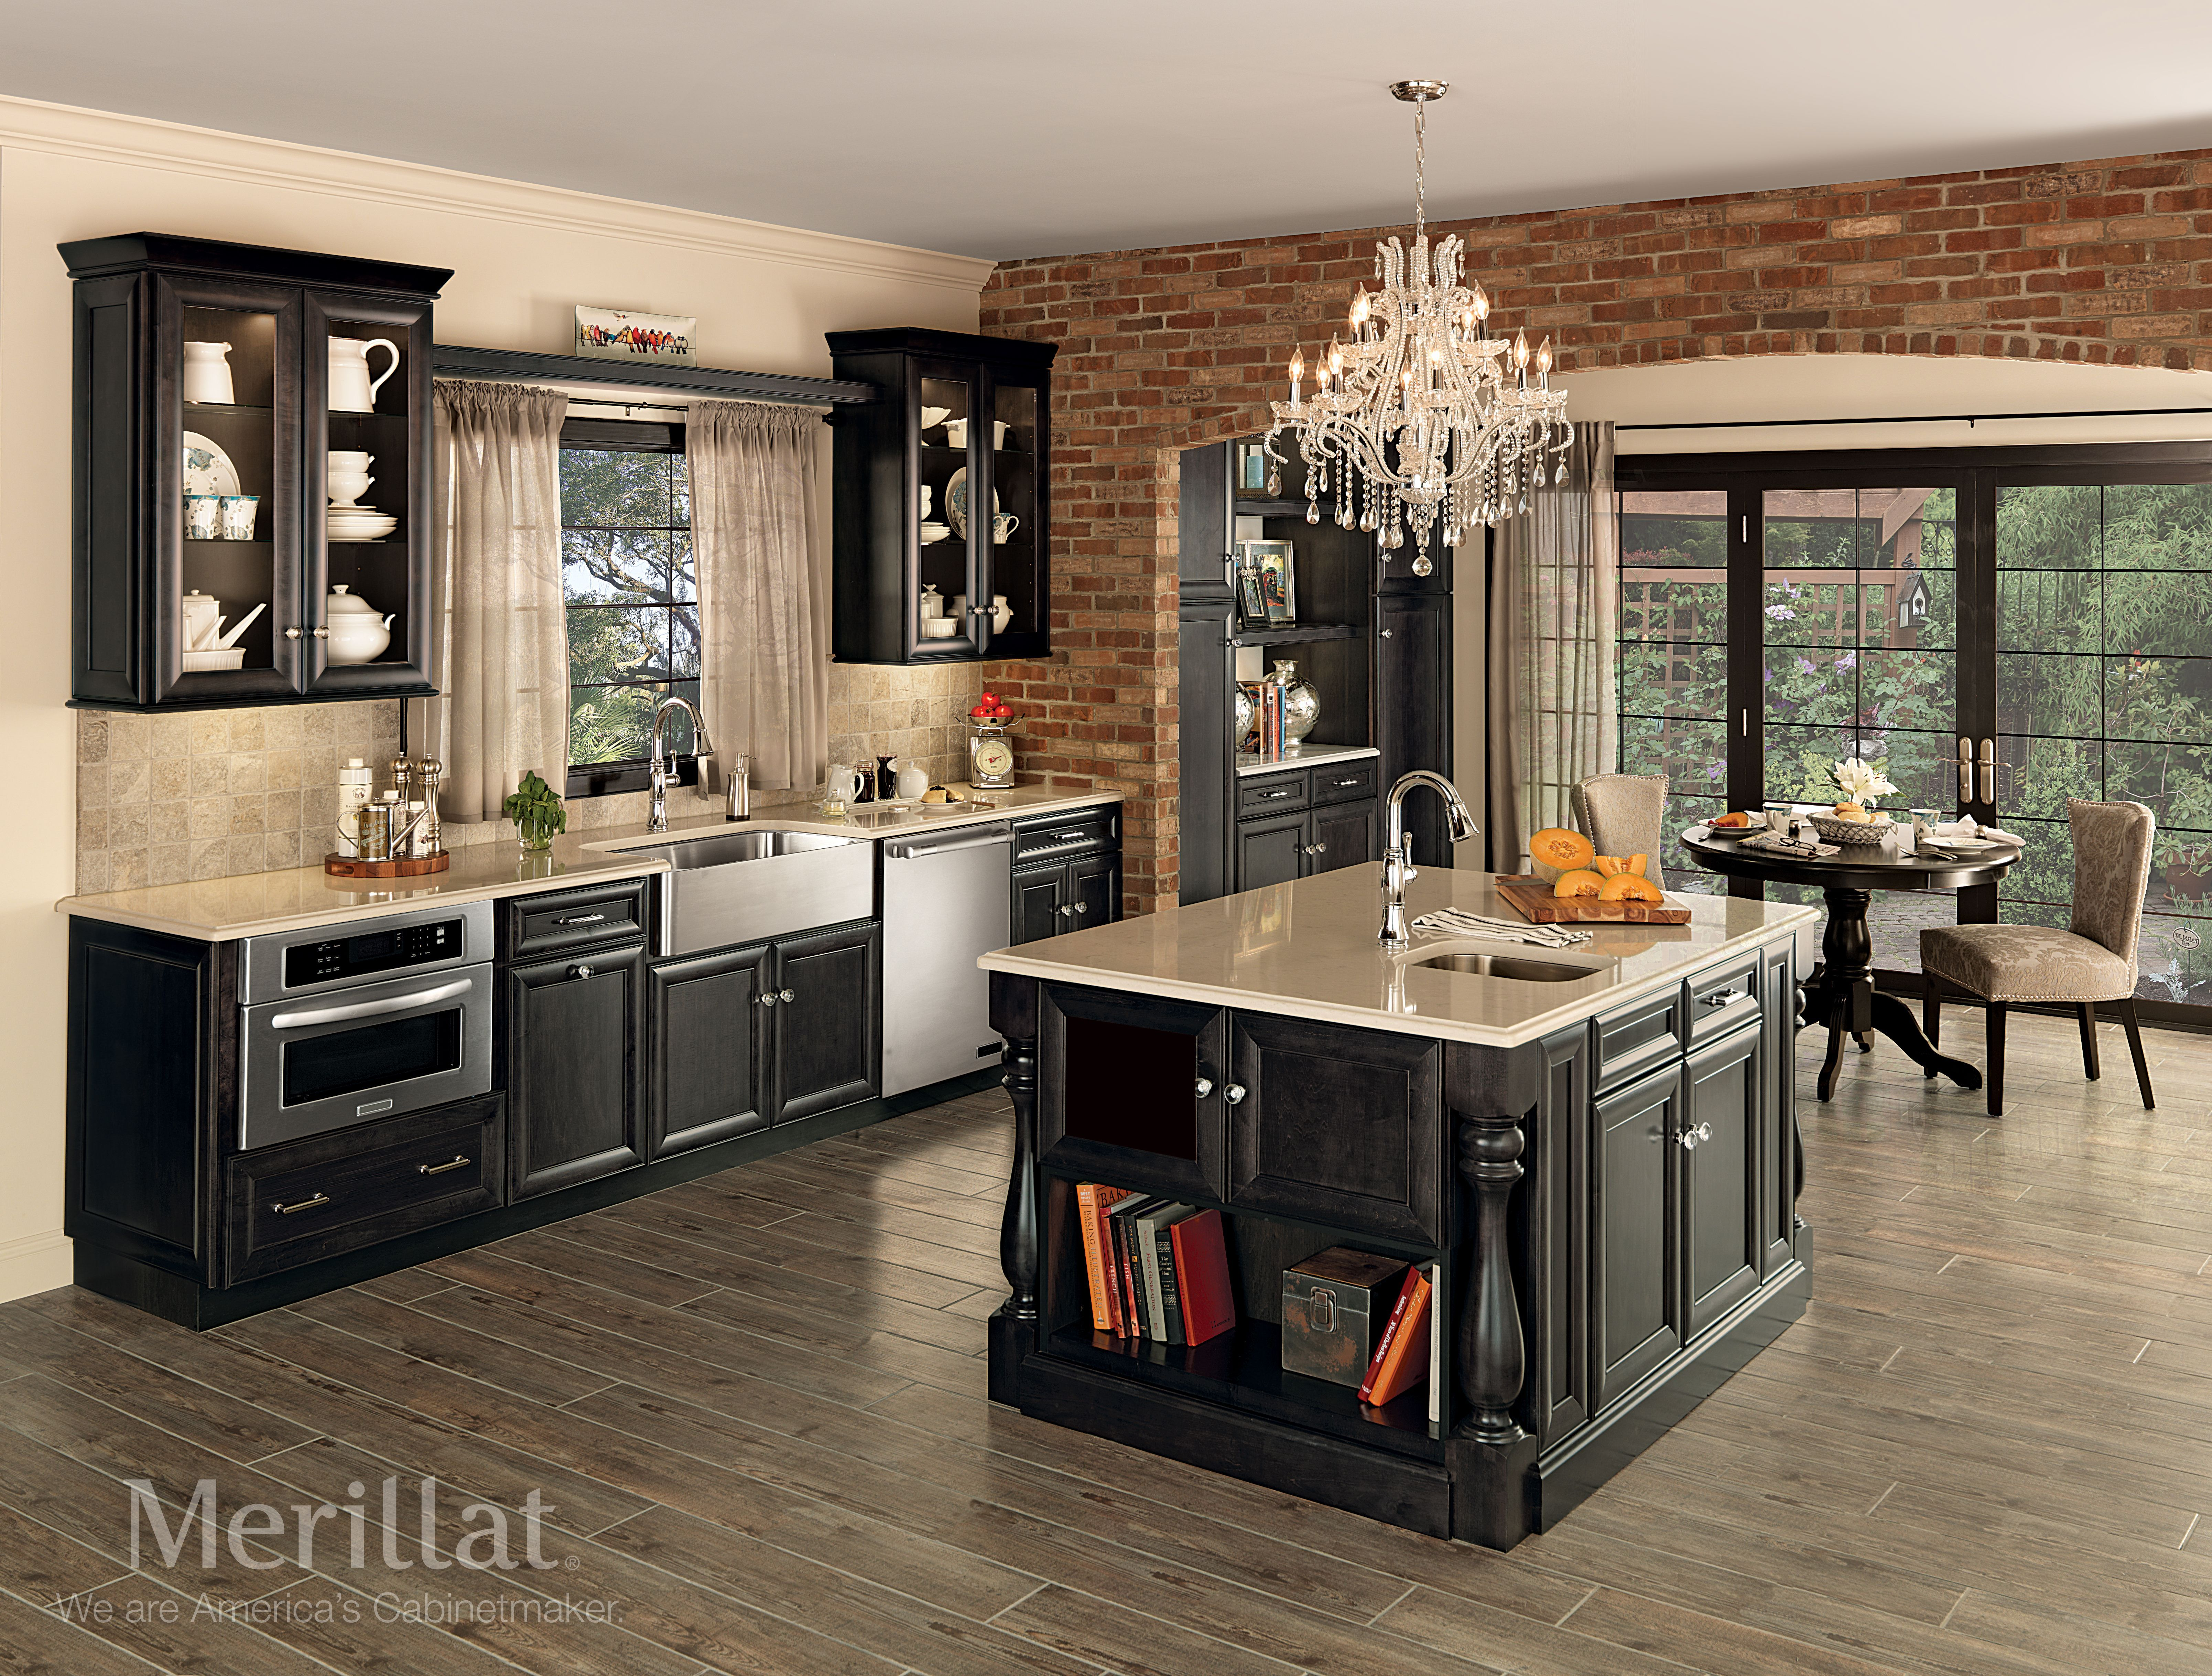 Merillat Classic Bayville In Maple Dusk Merillat Cabinetry This Bourbon Street Inspired Kitchen Mi Galley Kitchen Design Kitchen Remodel Merillat Cabinets